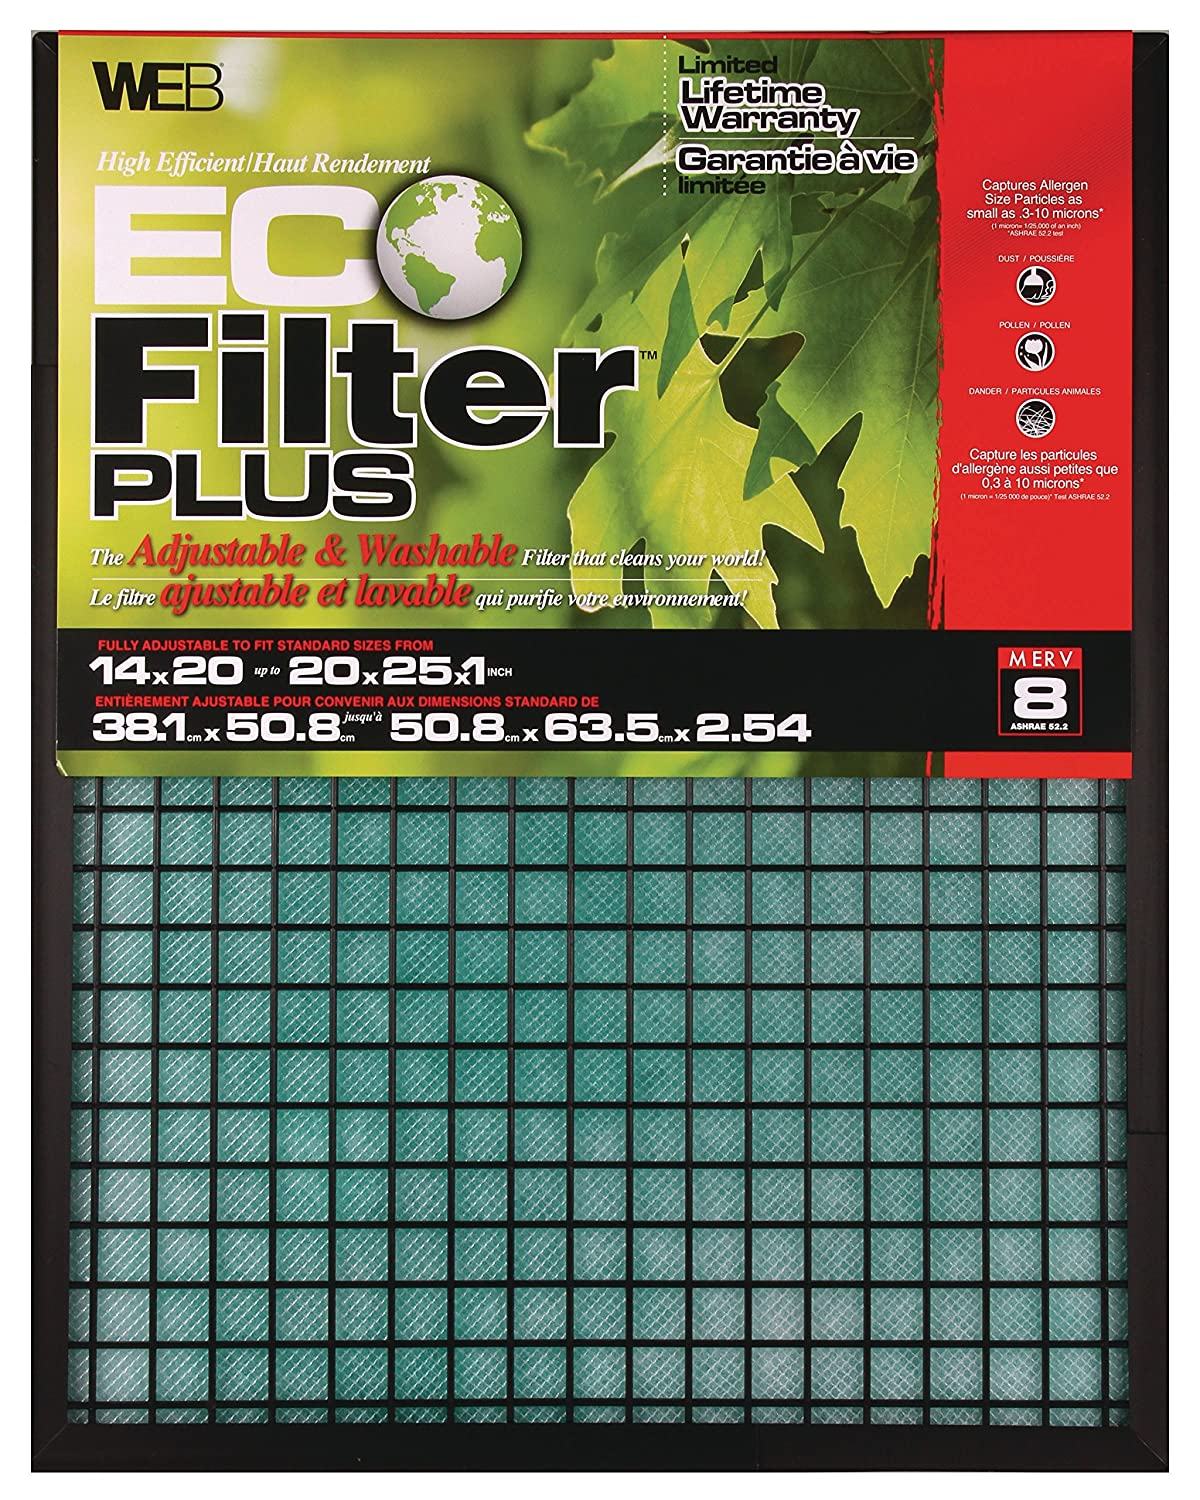 WEB Eco Filter Plus Adjustable Air Filter 14x20x1 up to 20x25x1 WPLUS